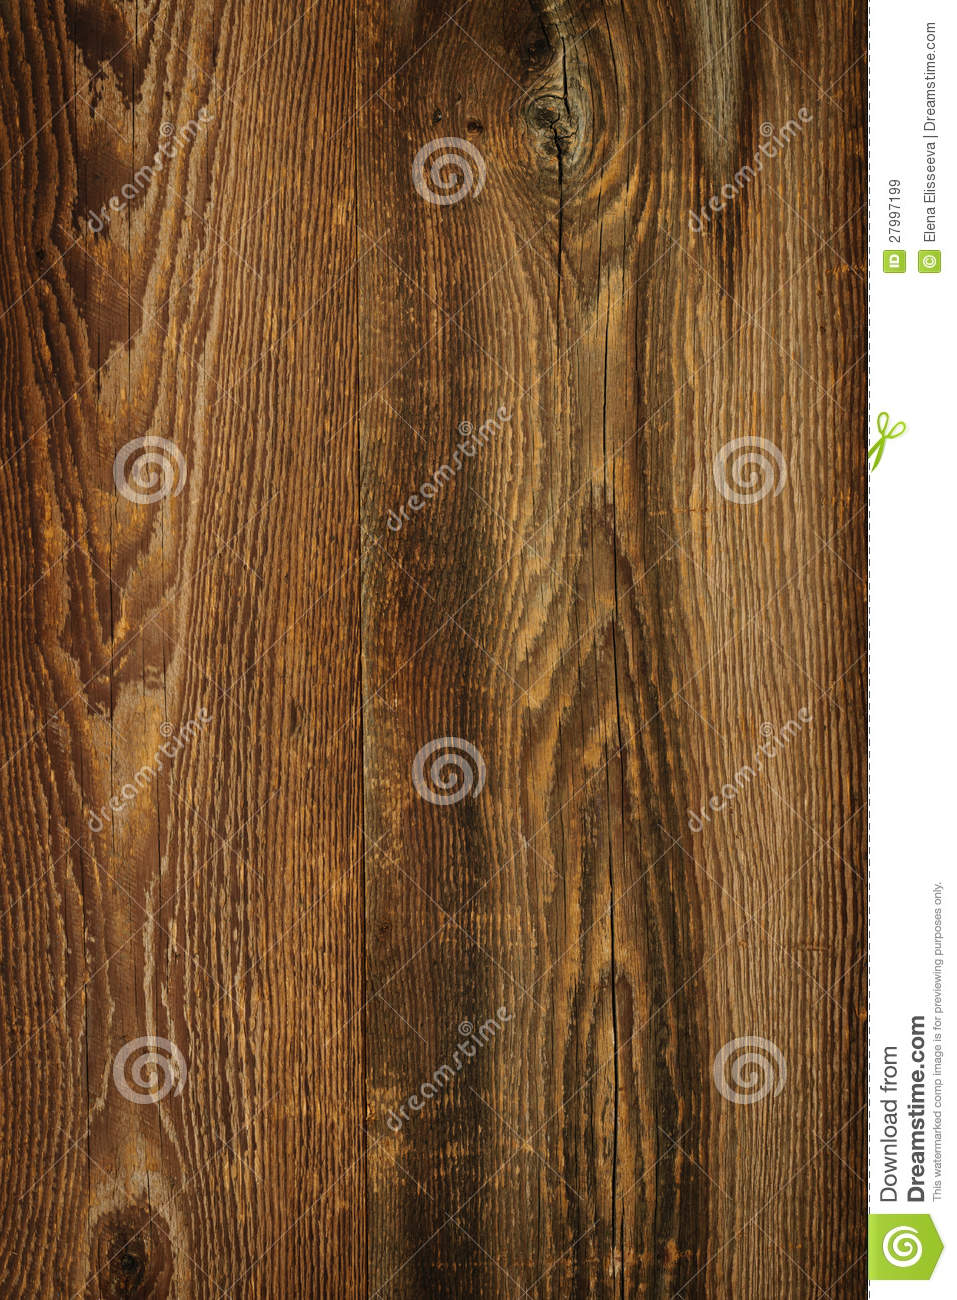 Rustic Wood Background Royalty Free Stock Images  Image